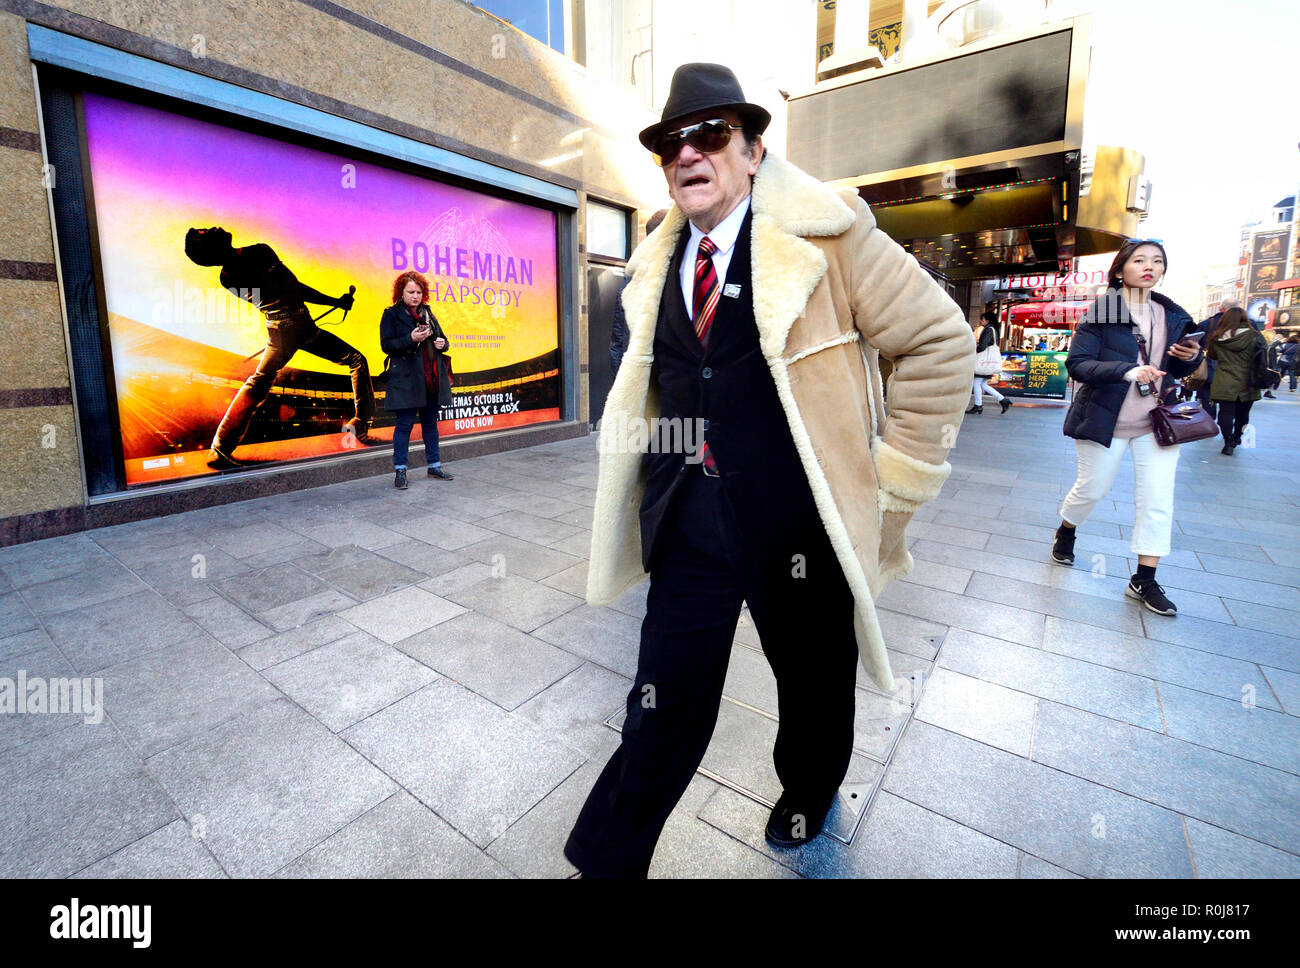 Man in a sheepskin jacket in Leicester Square, London, England, UK. - Stock Image